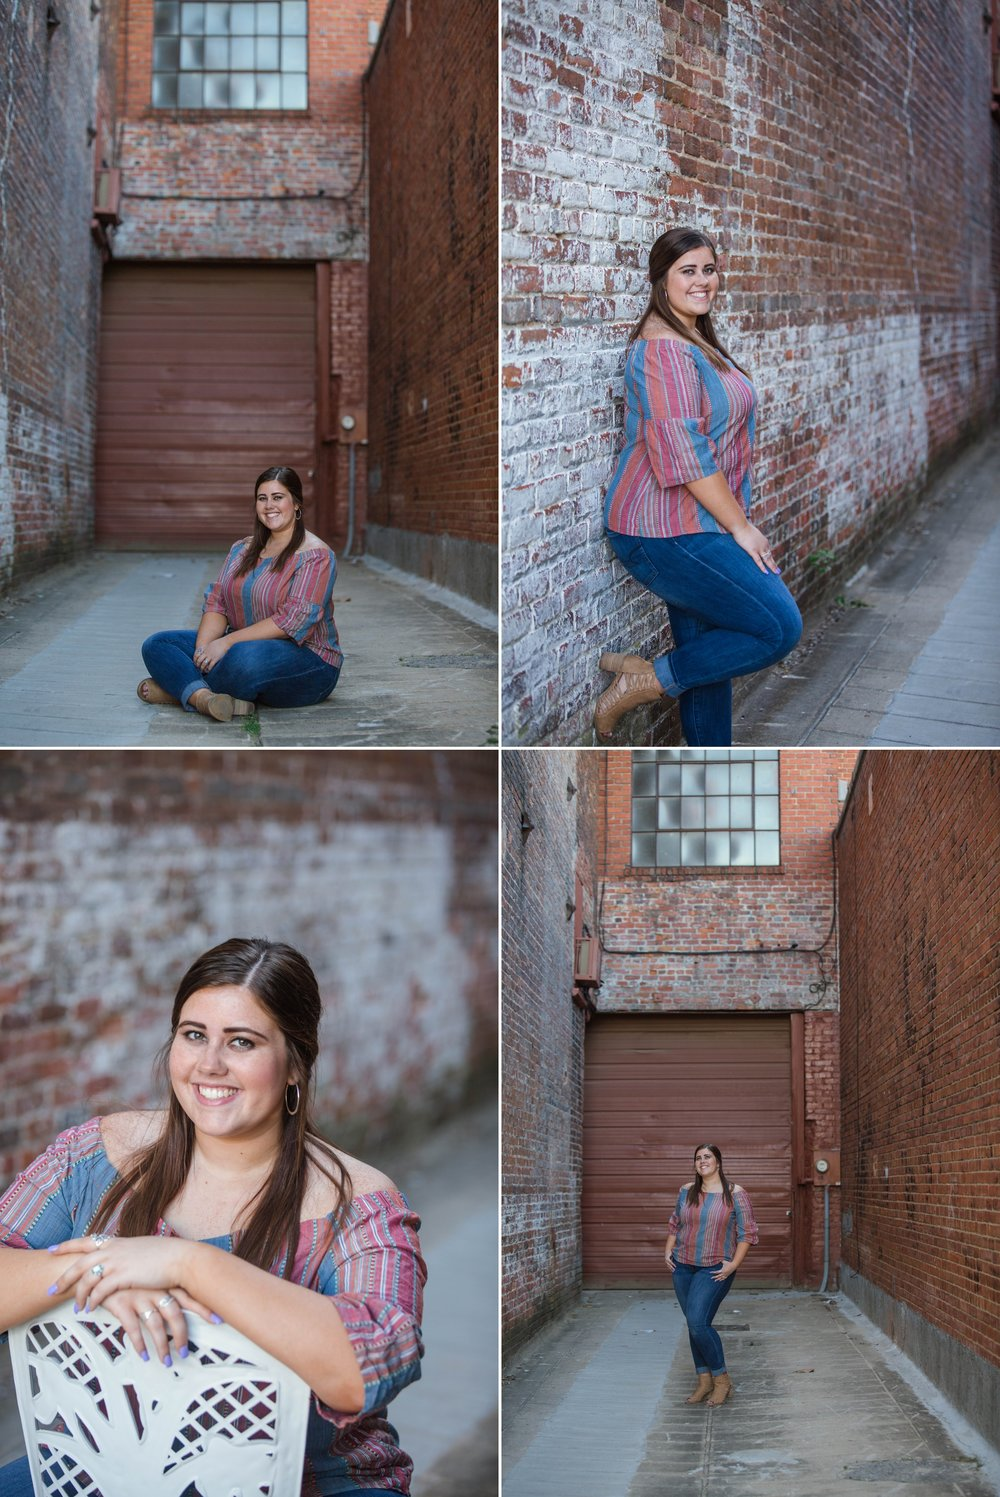 Goldsboro North Carolina Senior Photographer - Johanna Dye Photography